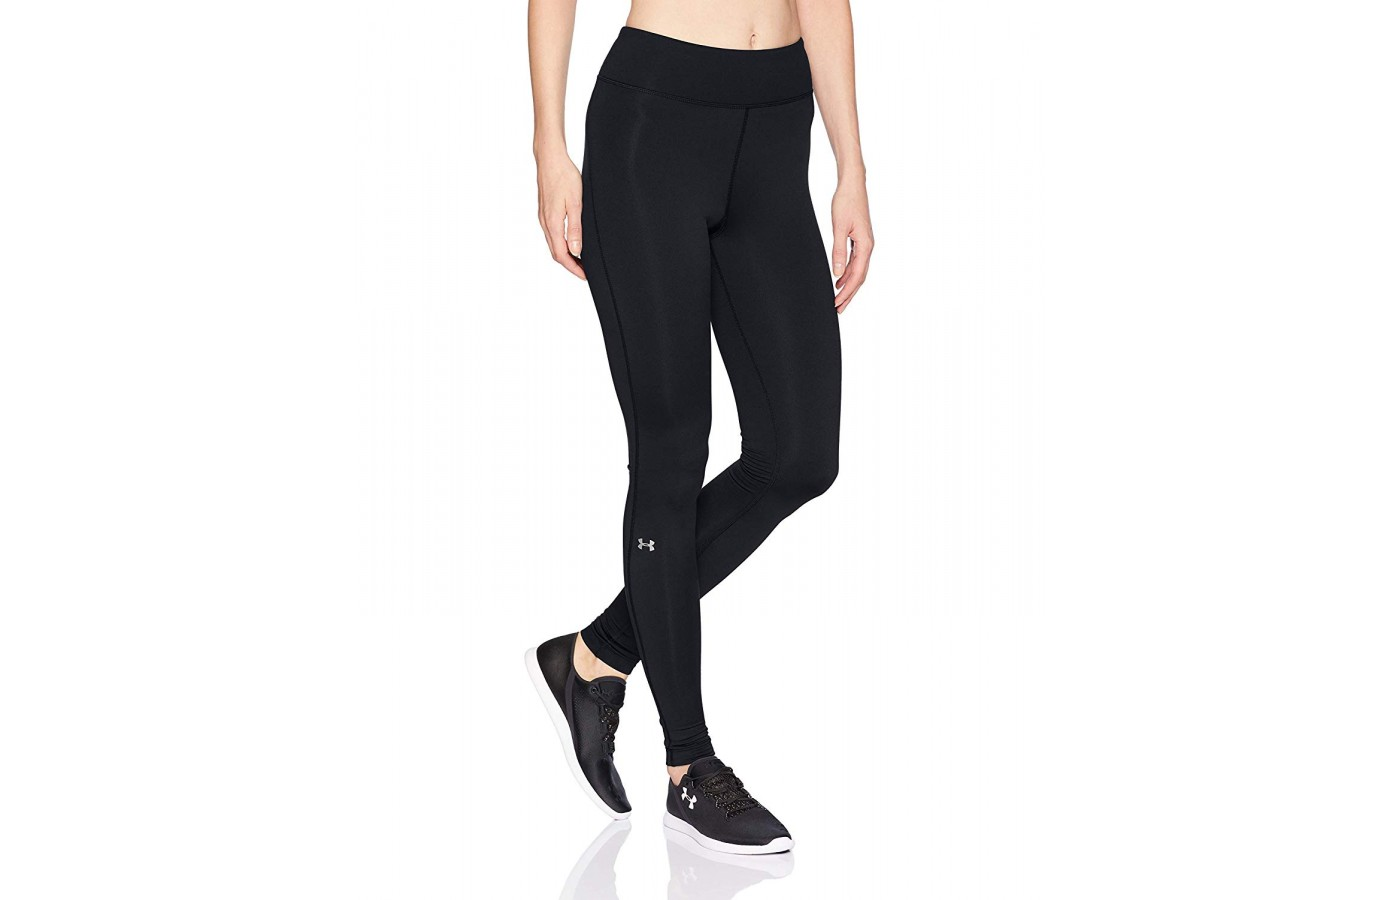 ColdGear Leggings Under Armour